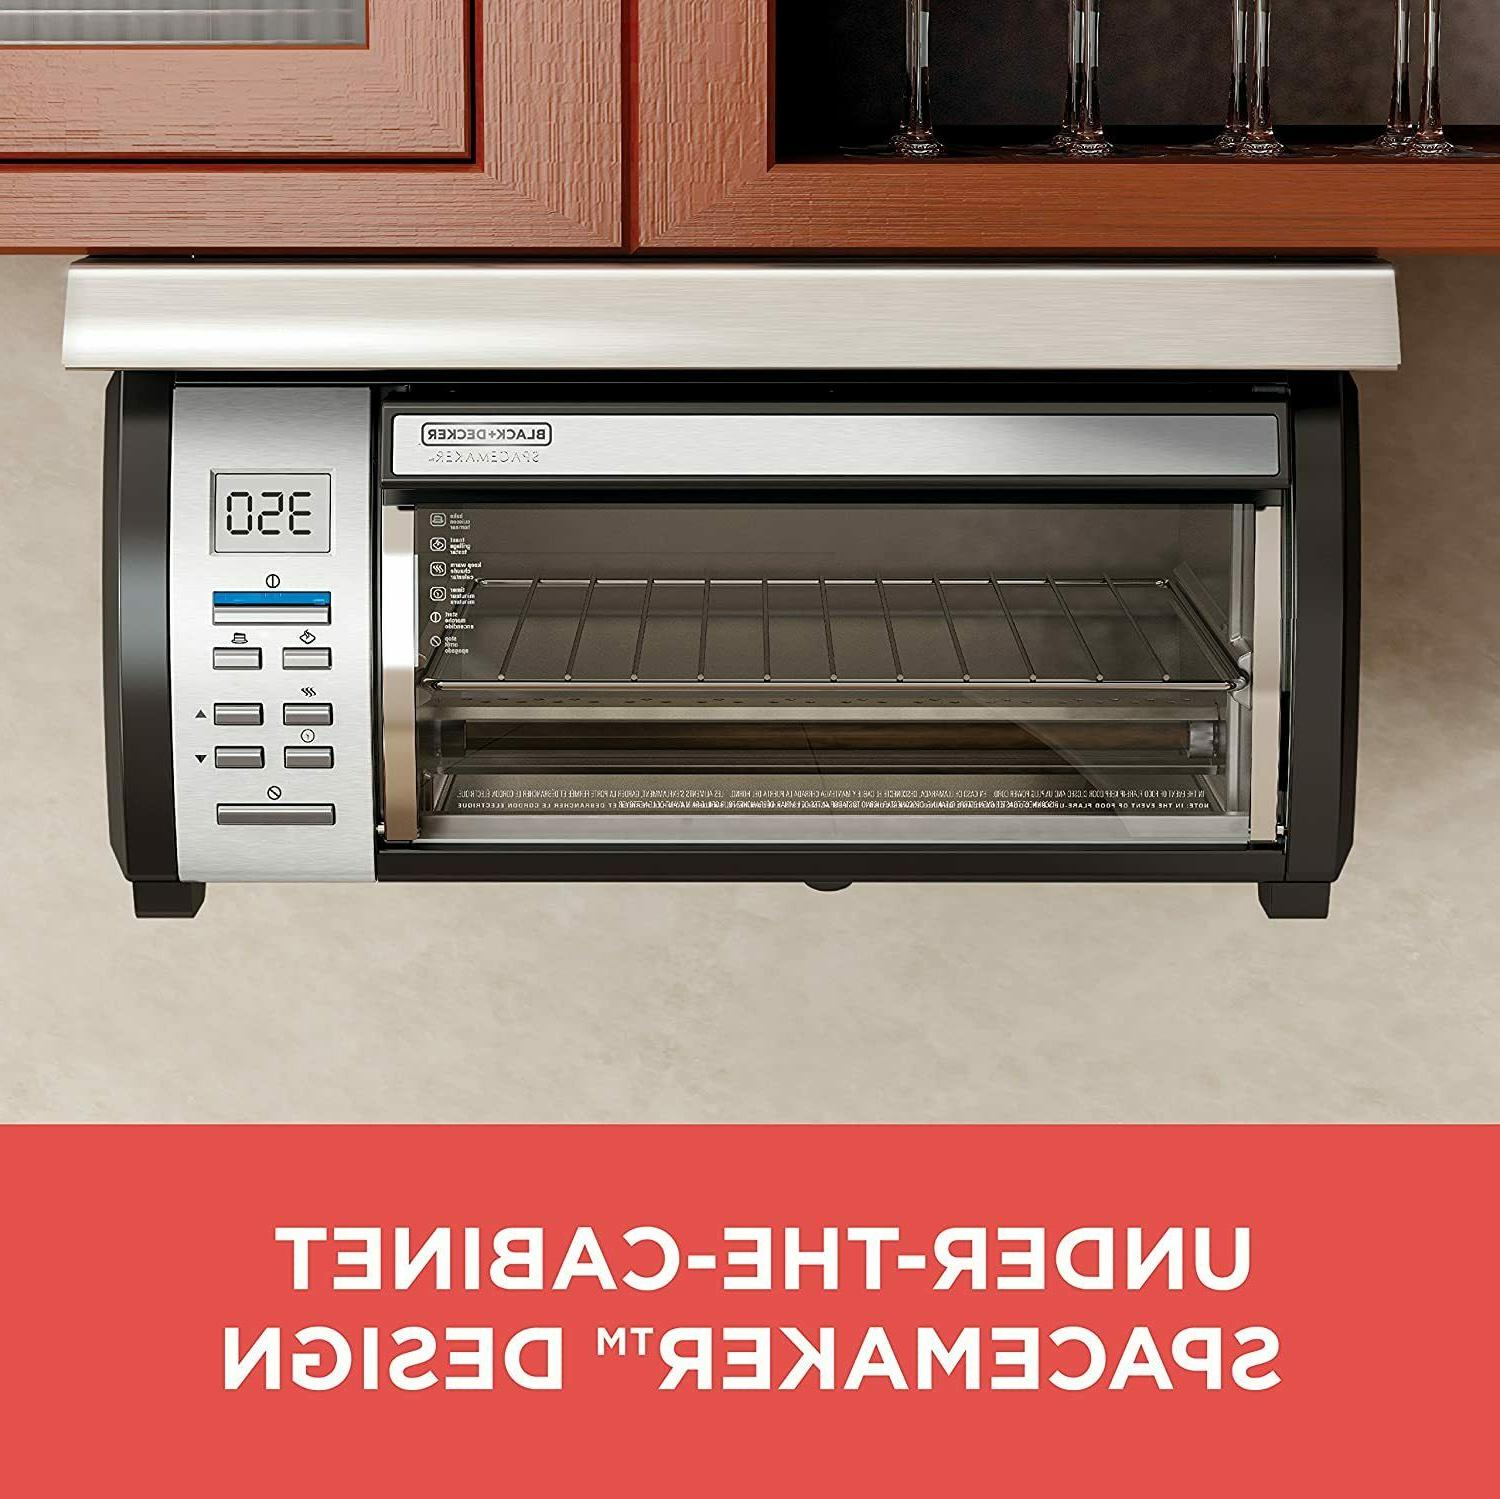 New Under Cabinet Toaster Oven SpaceMaker TROS1000D